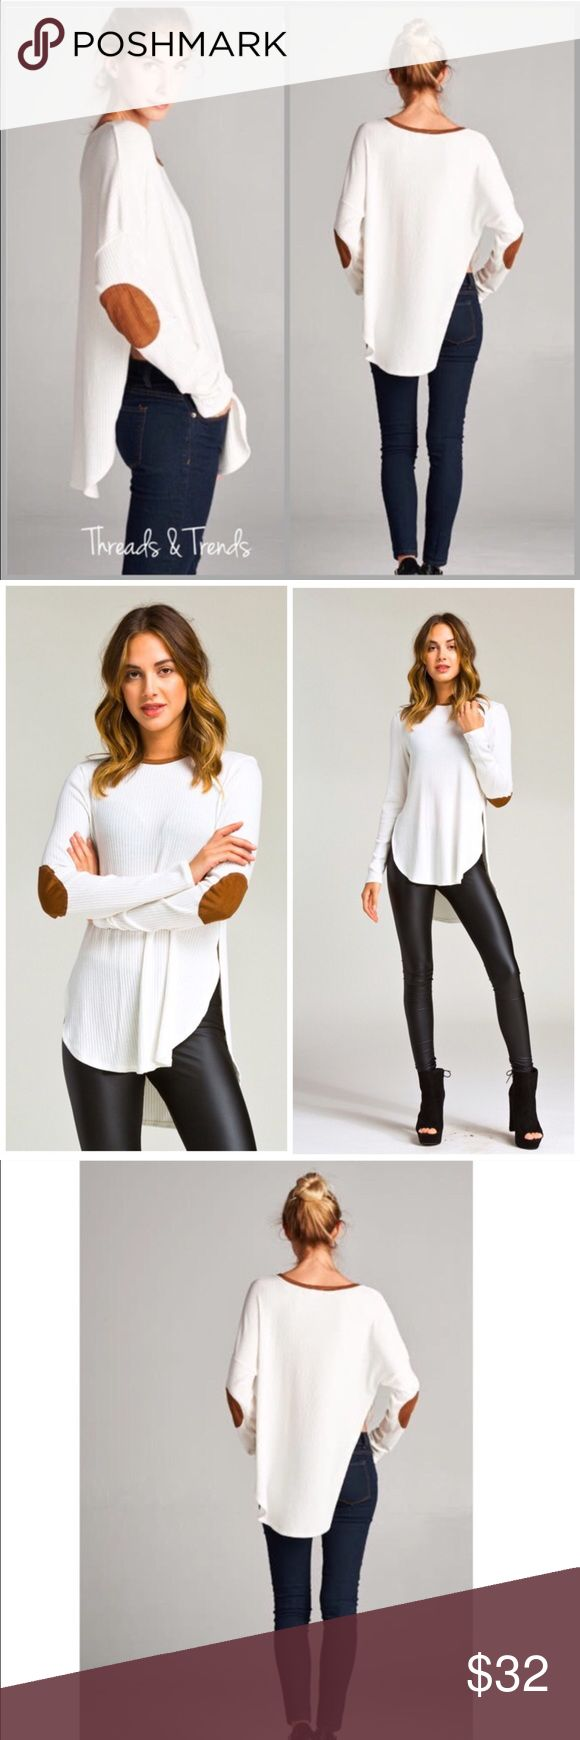 Ribbed Elbow Patch Top Ribbed Elbow Patch Top  •Loose fit  •round neck •long sleeve  •Faux Suede neckband & elbow patch's •Rounded hems with high side slits.  •Drop shoulder.  •Medium weight wide ribbed soft knit fabric •Beautifully drapes and stretches very well.  Available Sizes: S, M, L  Stylist Notes: great casual top to pair with denim or leggings. Camel leggings shown in pictures are sold separately. Bundle and Save. Marled Threads & Trends Tops